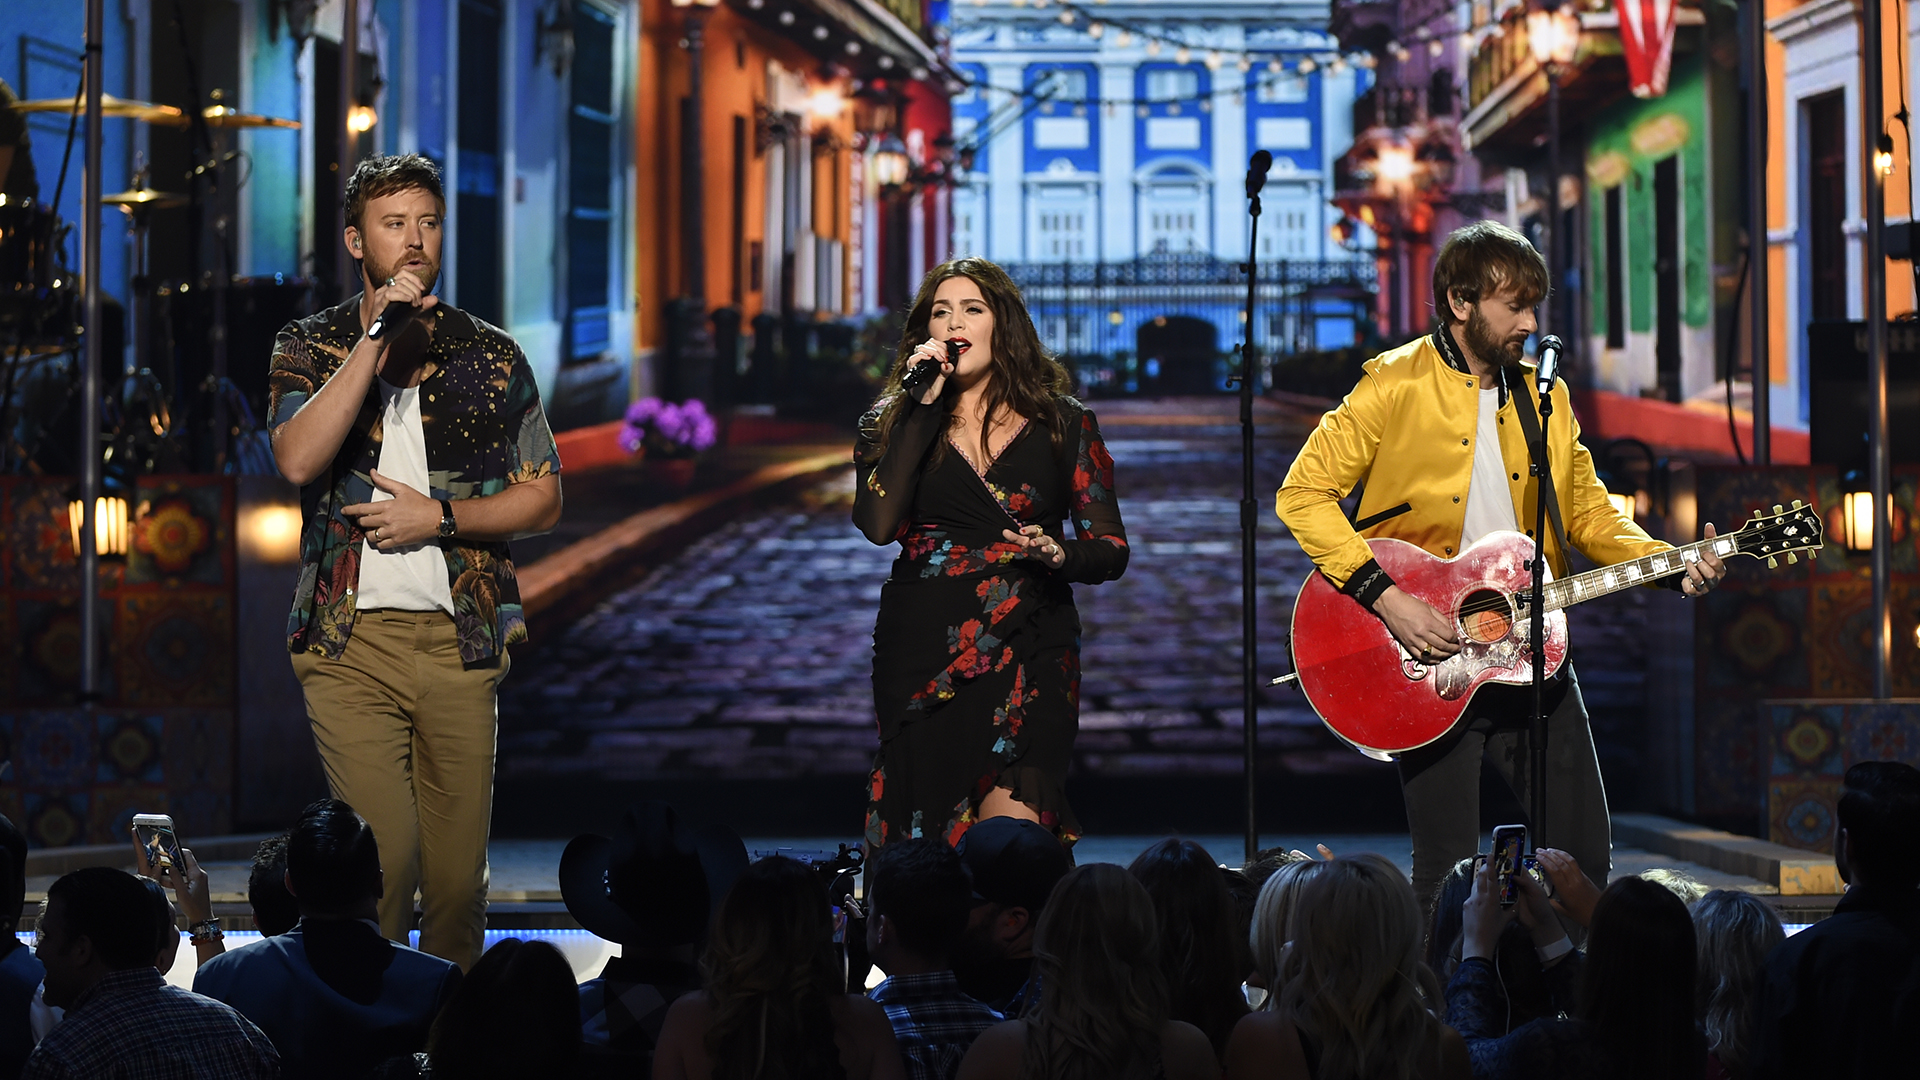 Lady Antebellum plays one of their latest singles,